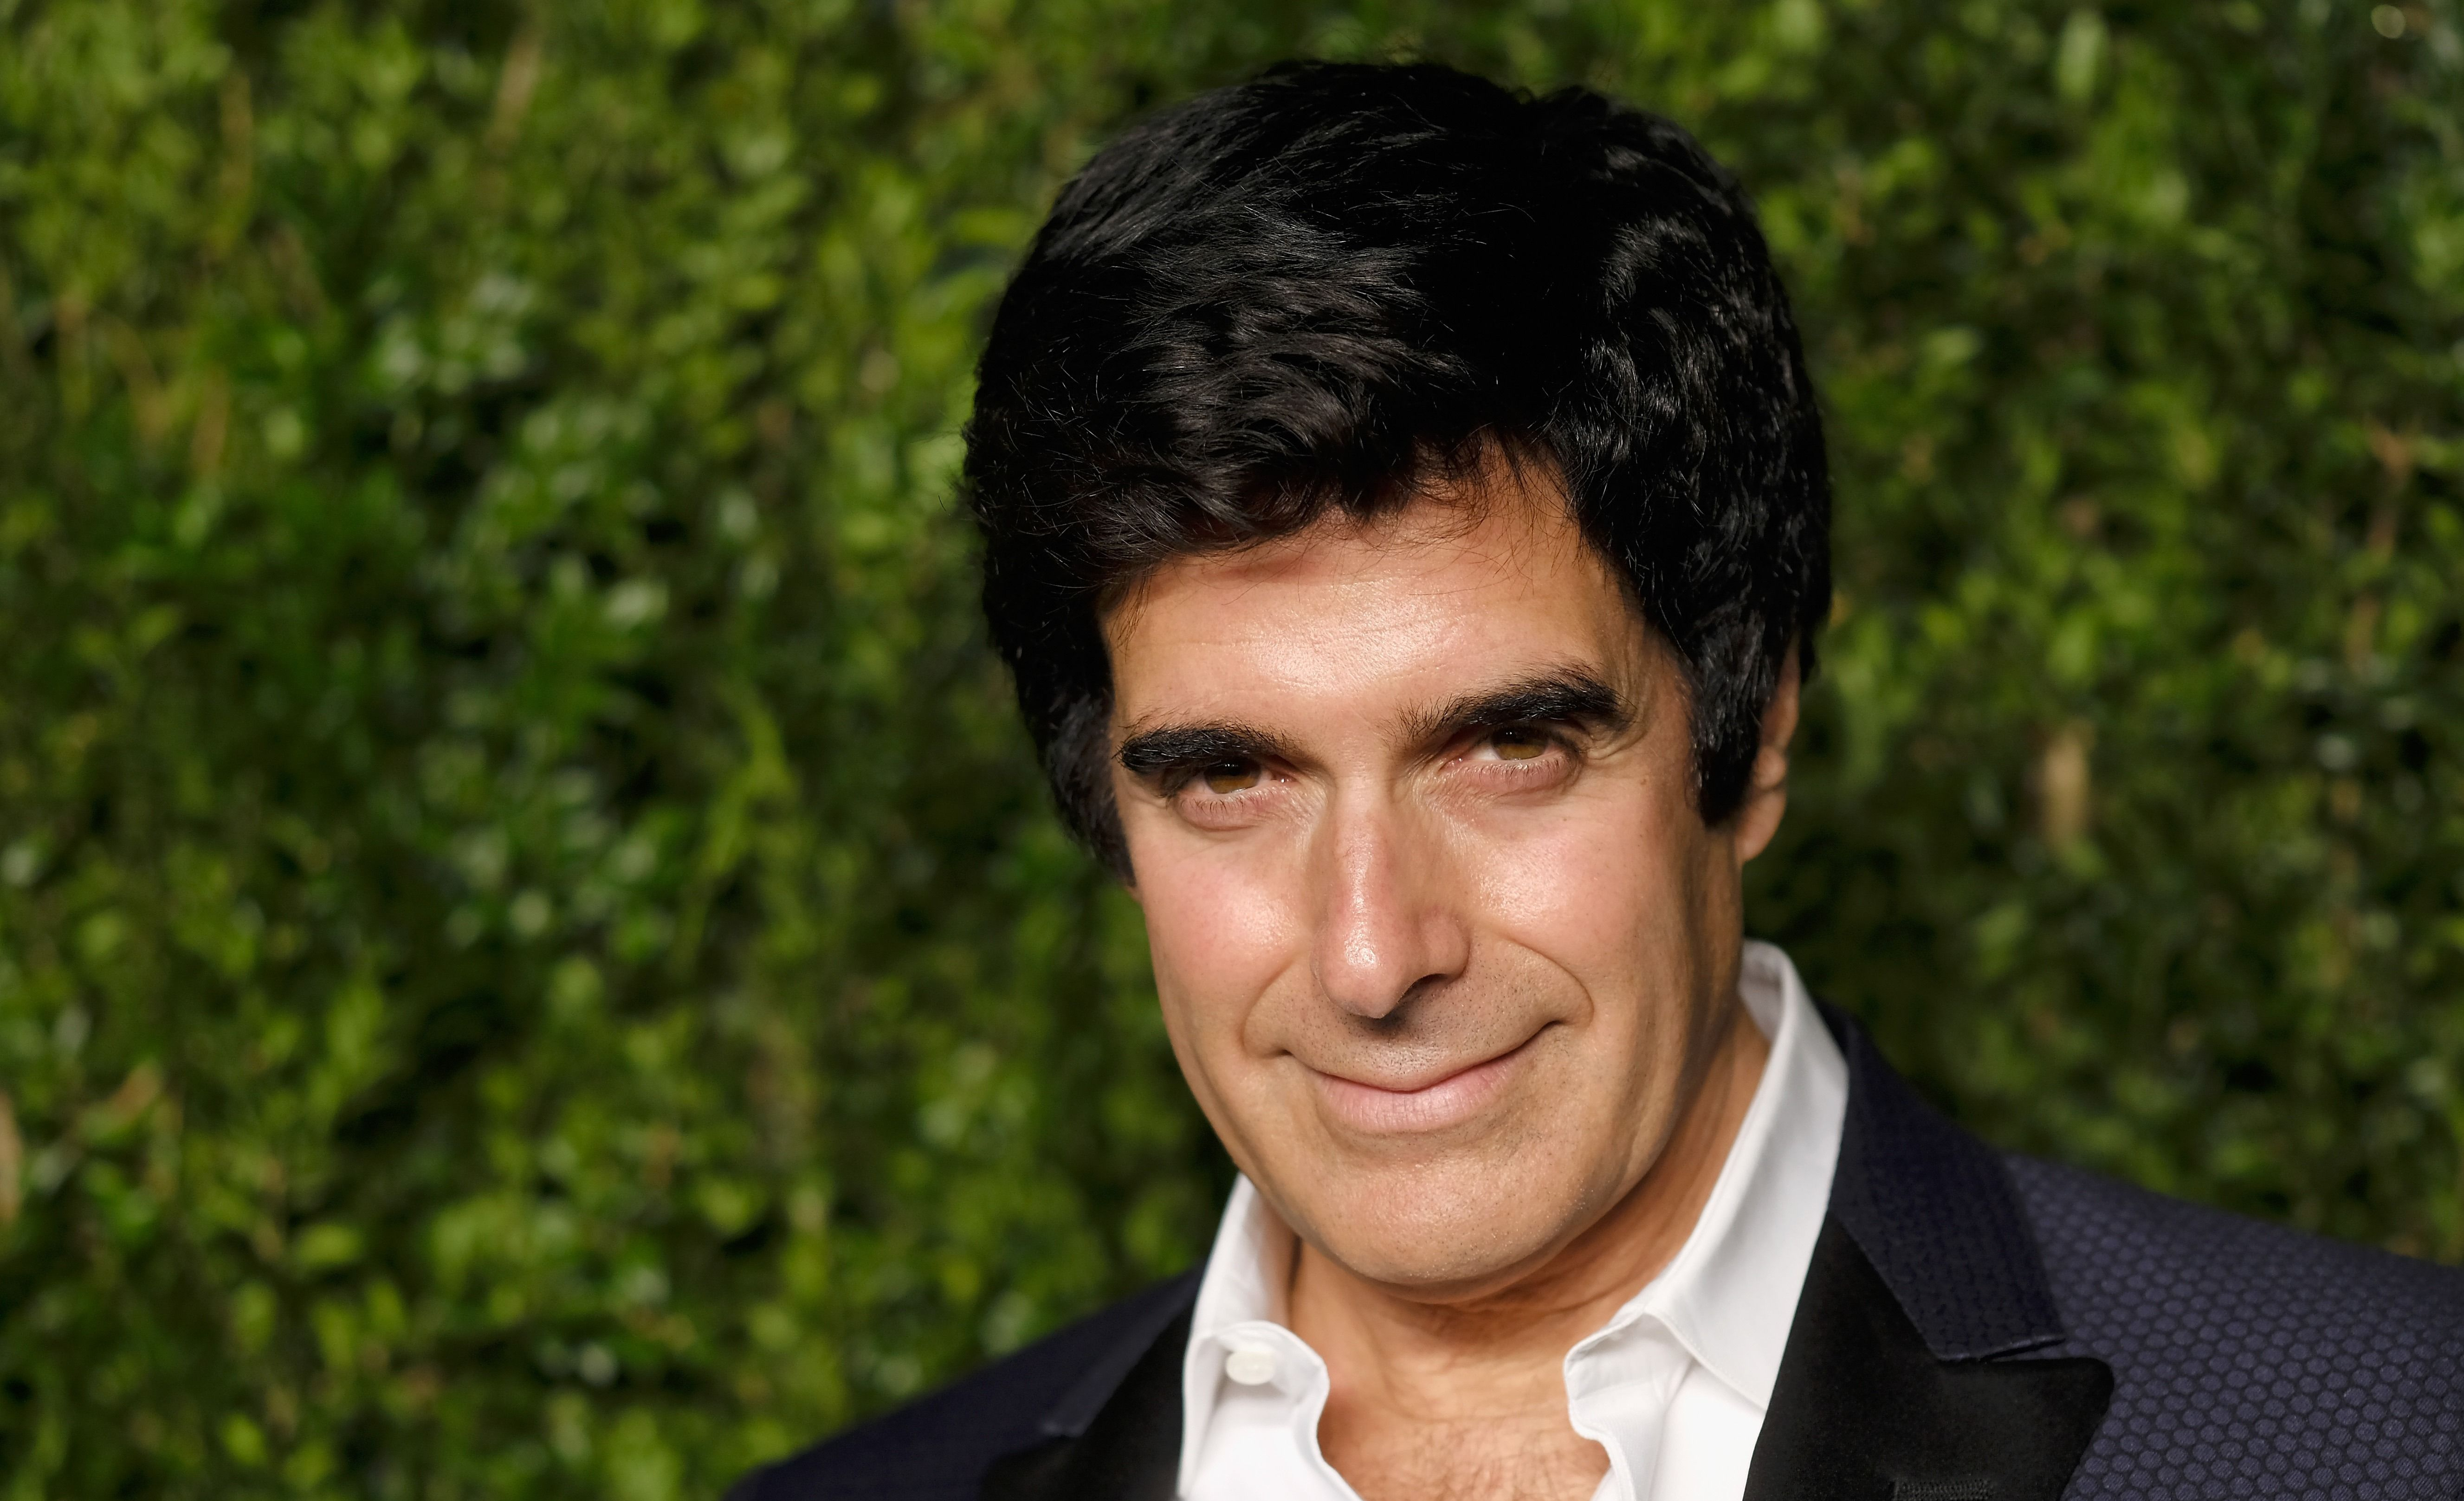 Magician David Copperfield Forced To Reveal Signature Trick In 400k